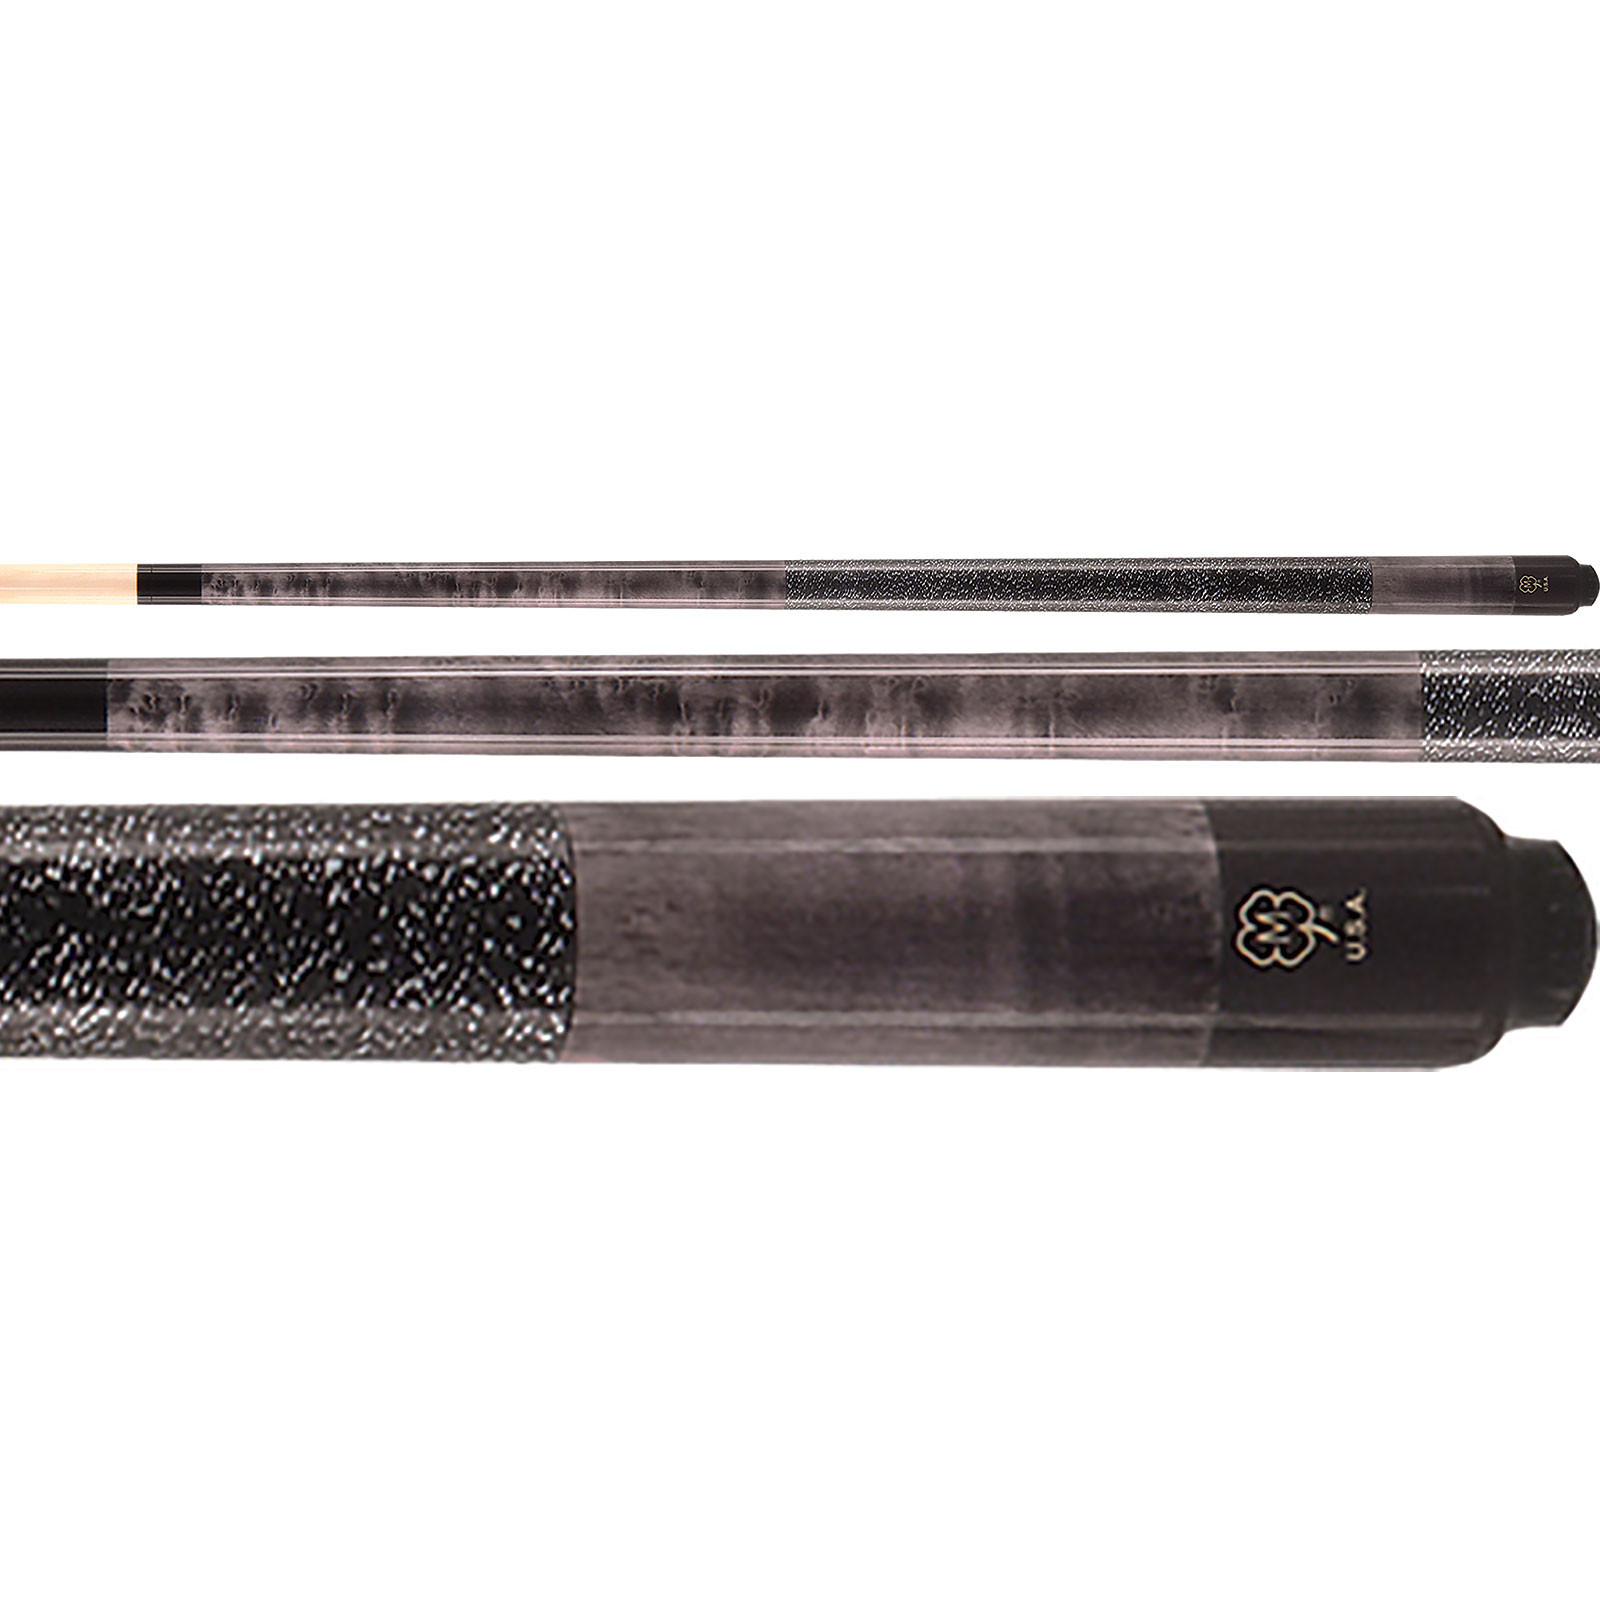 McDermott GS06 GS-Series Grey Pool Cue